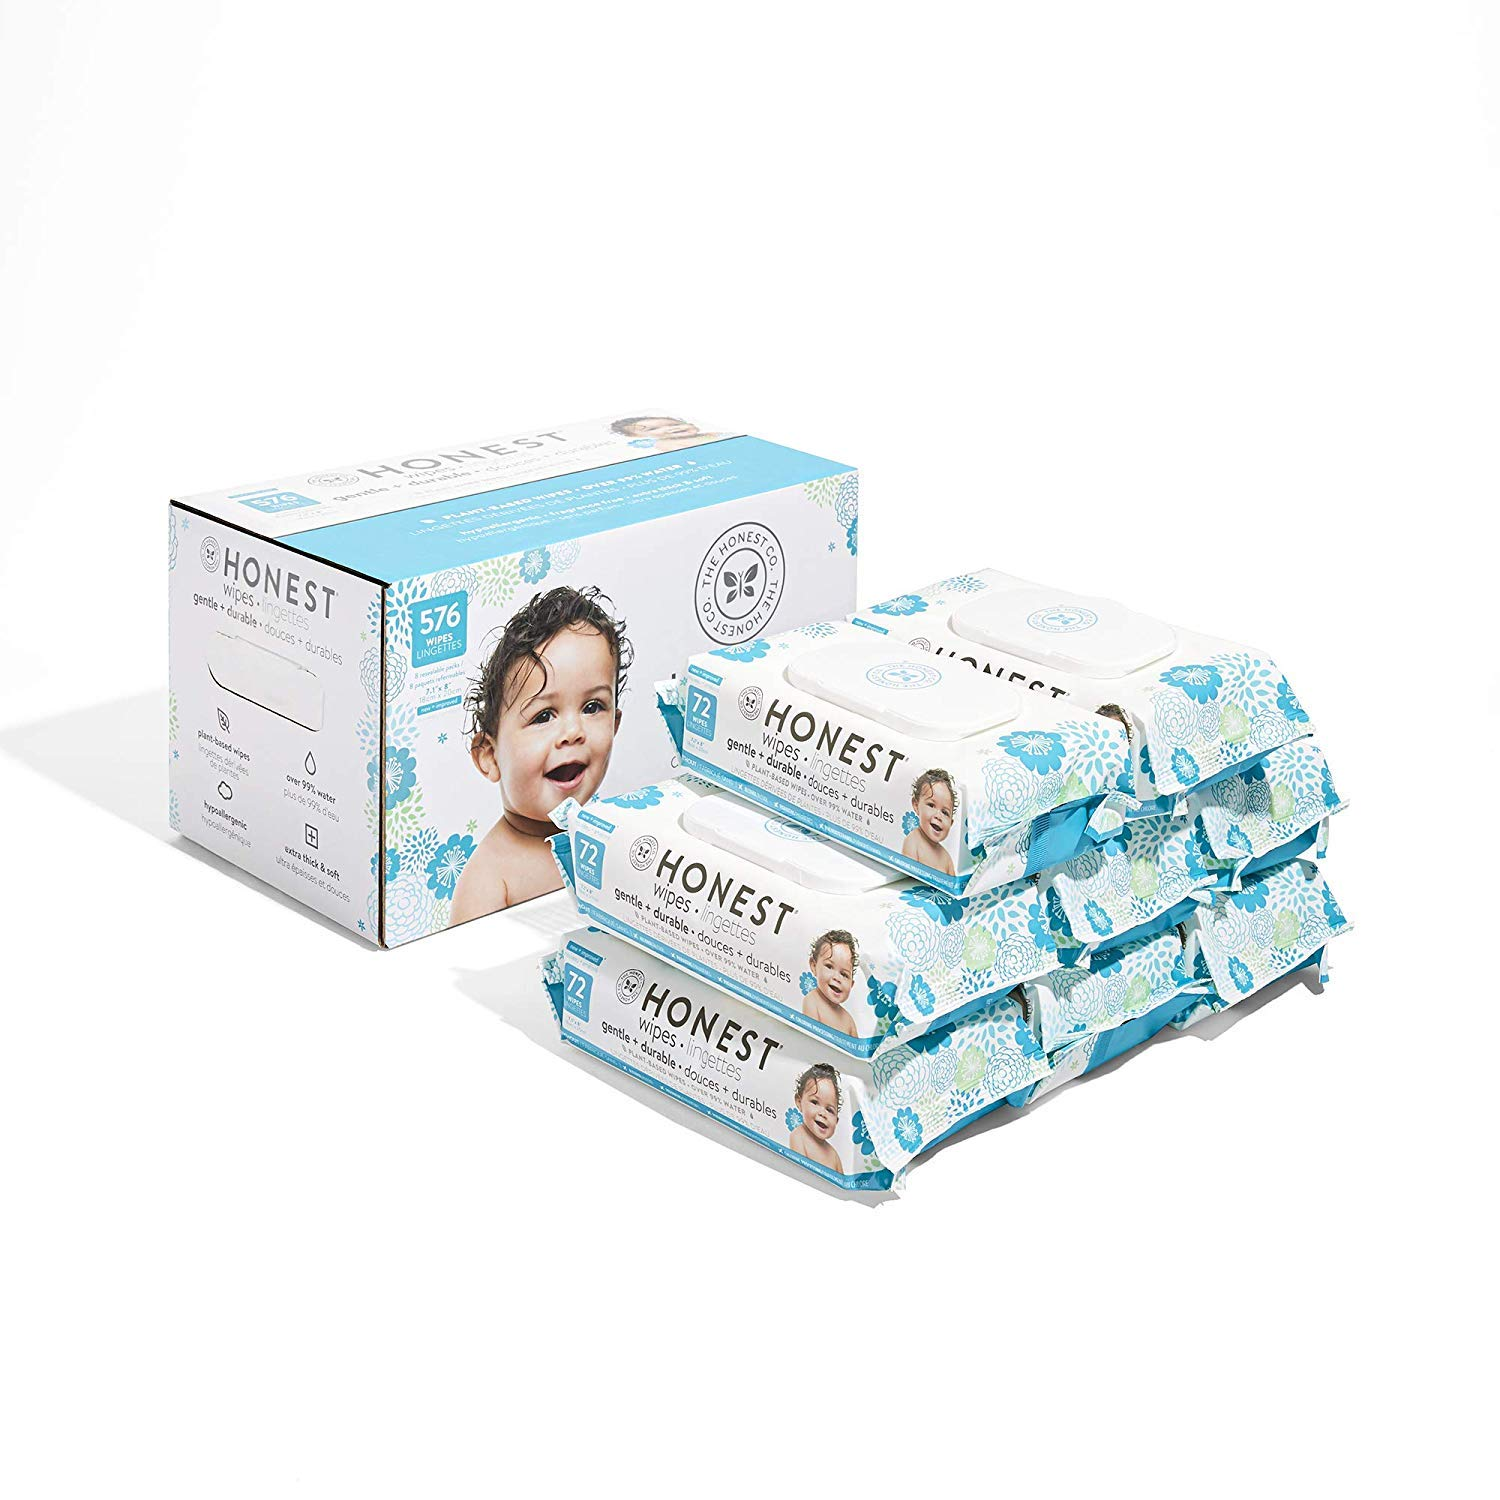 The Honest Company Baby Wipes - Pure and Gentle | Plant-Based | Alcohol, Fragrance and Paraben Free | Hypoallergenic Honest Wipes | 576 Count by The Honest Company